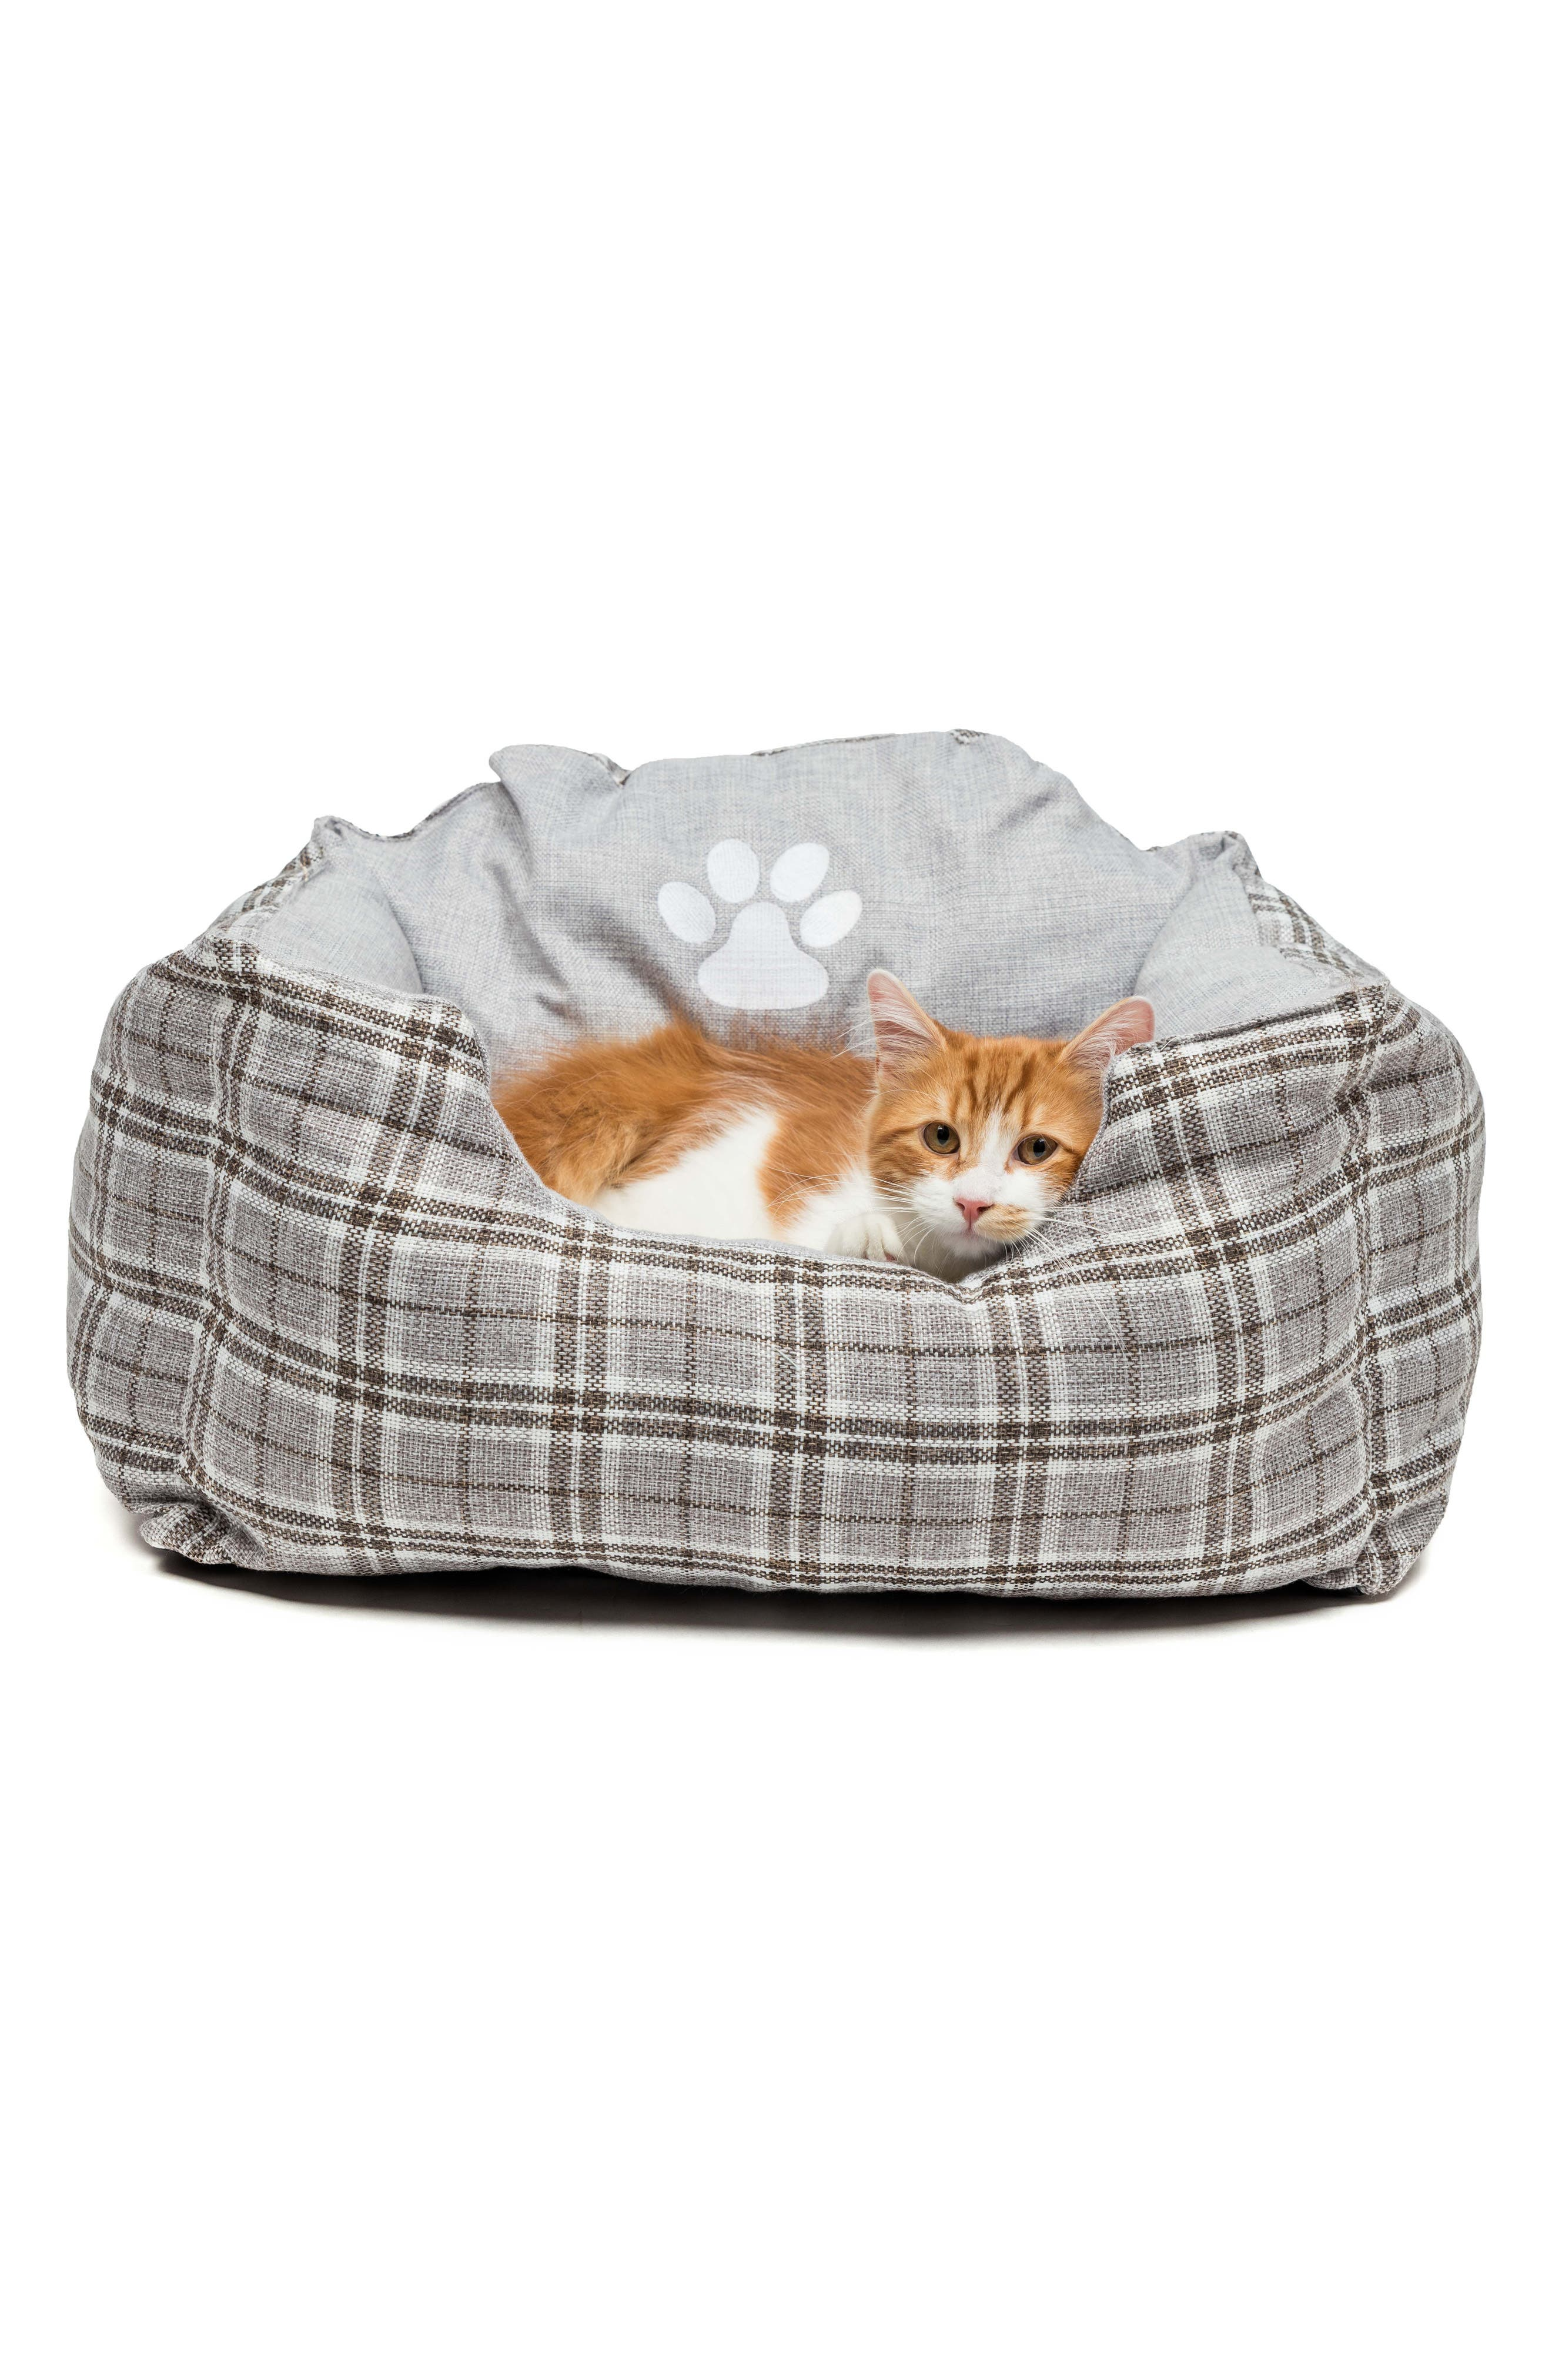 Harlee Small Square Pet Bed,                             Alternate thumbnail 2, color,                             020